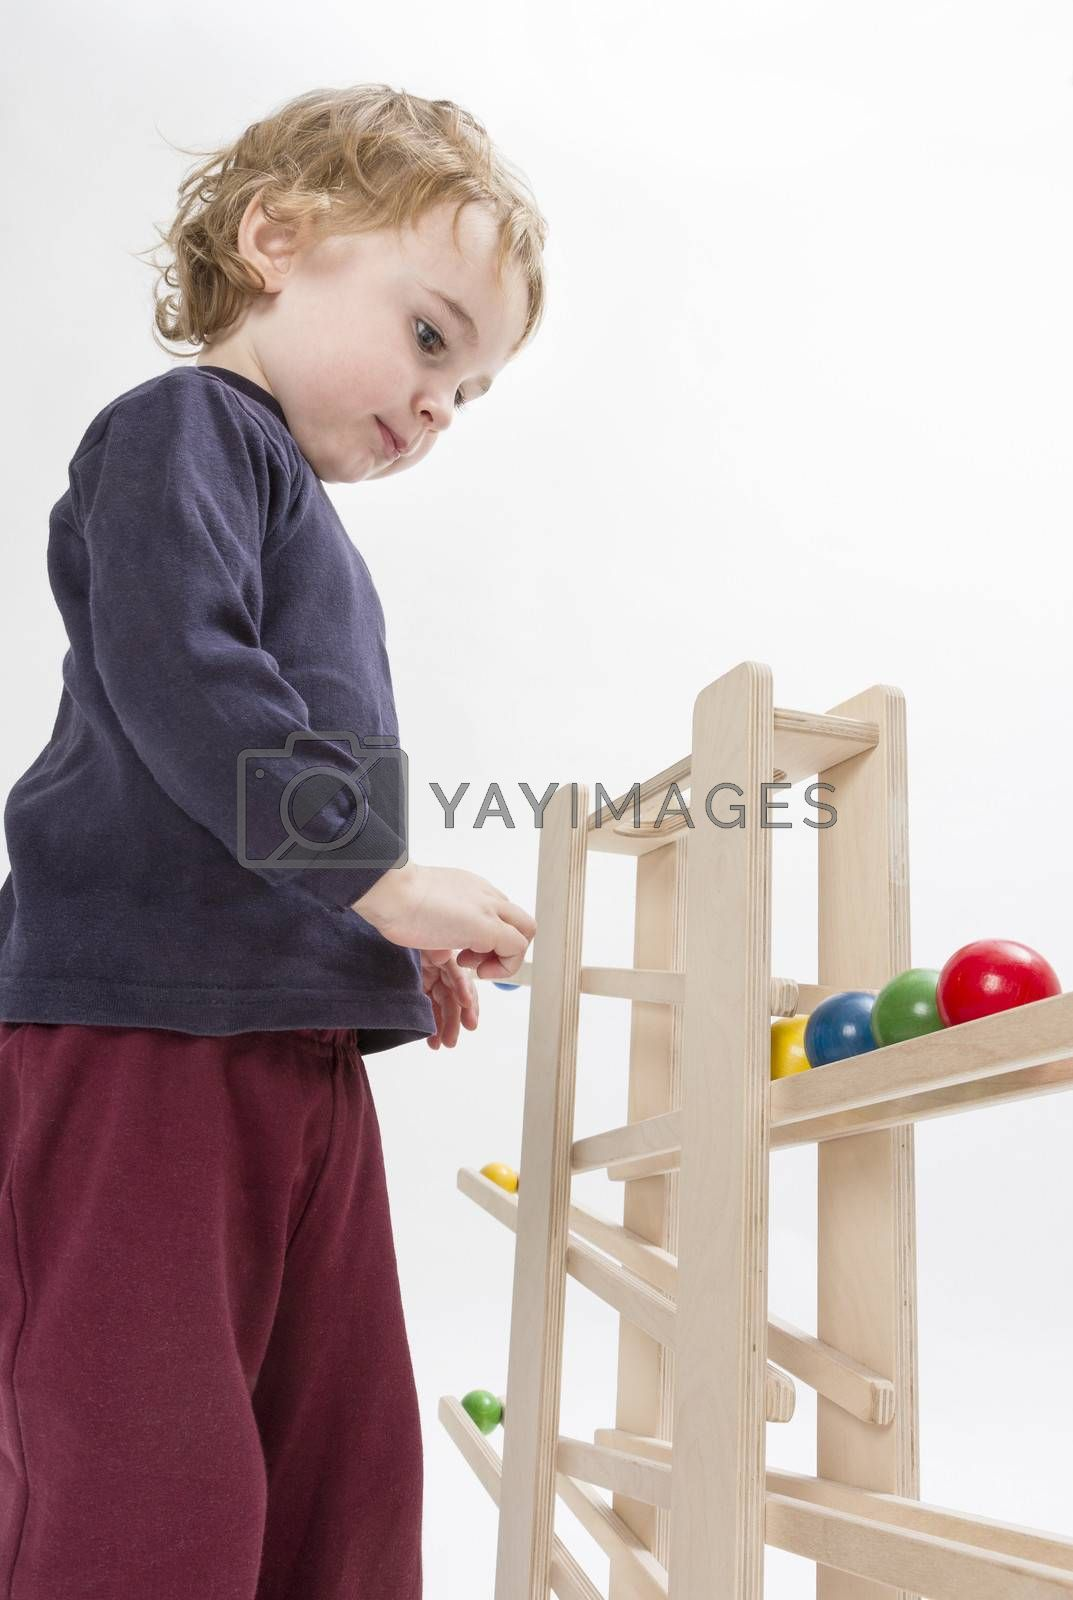 young child playing with wooden ball path. studio shot in grey background